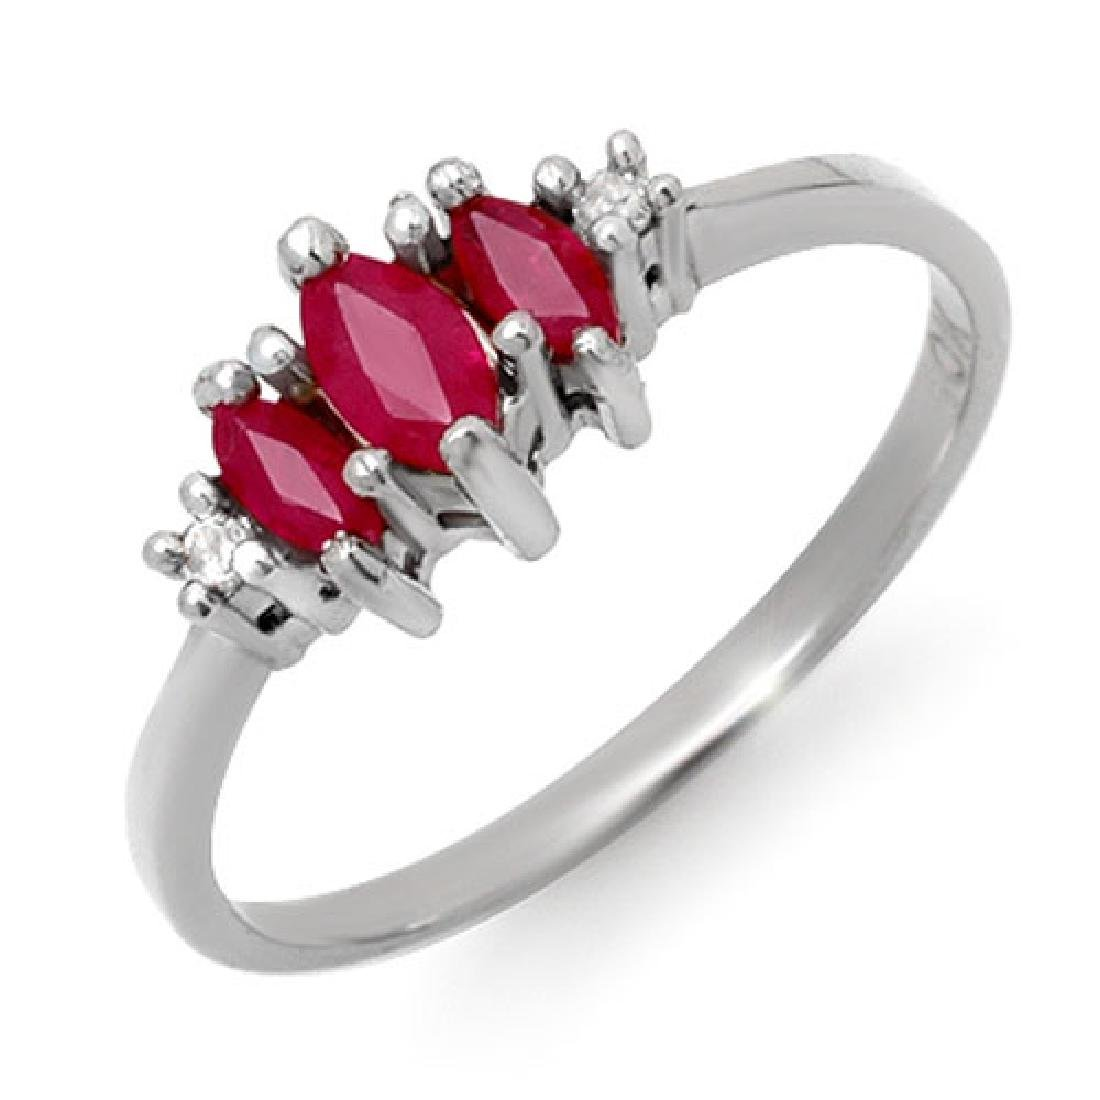 0.54 CTW Ruby & Diamond Ring 10K White Gold